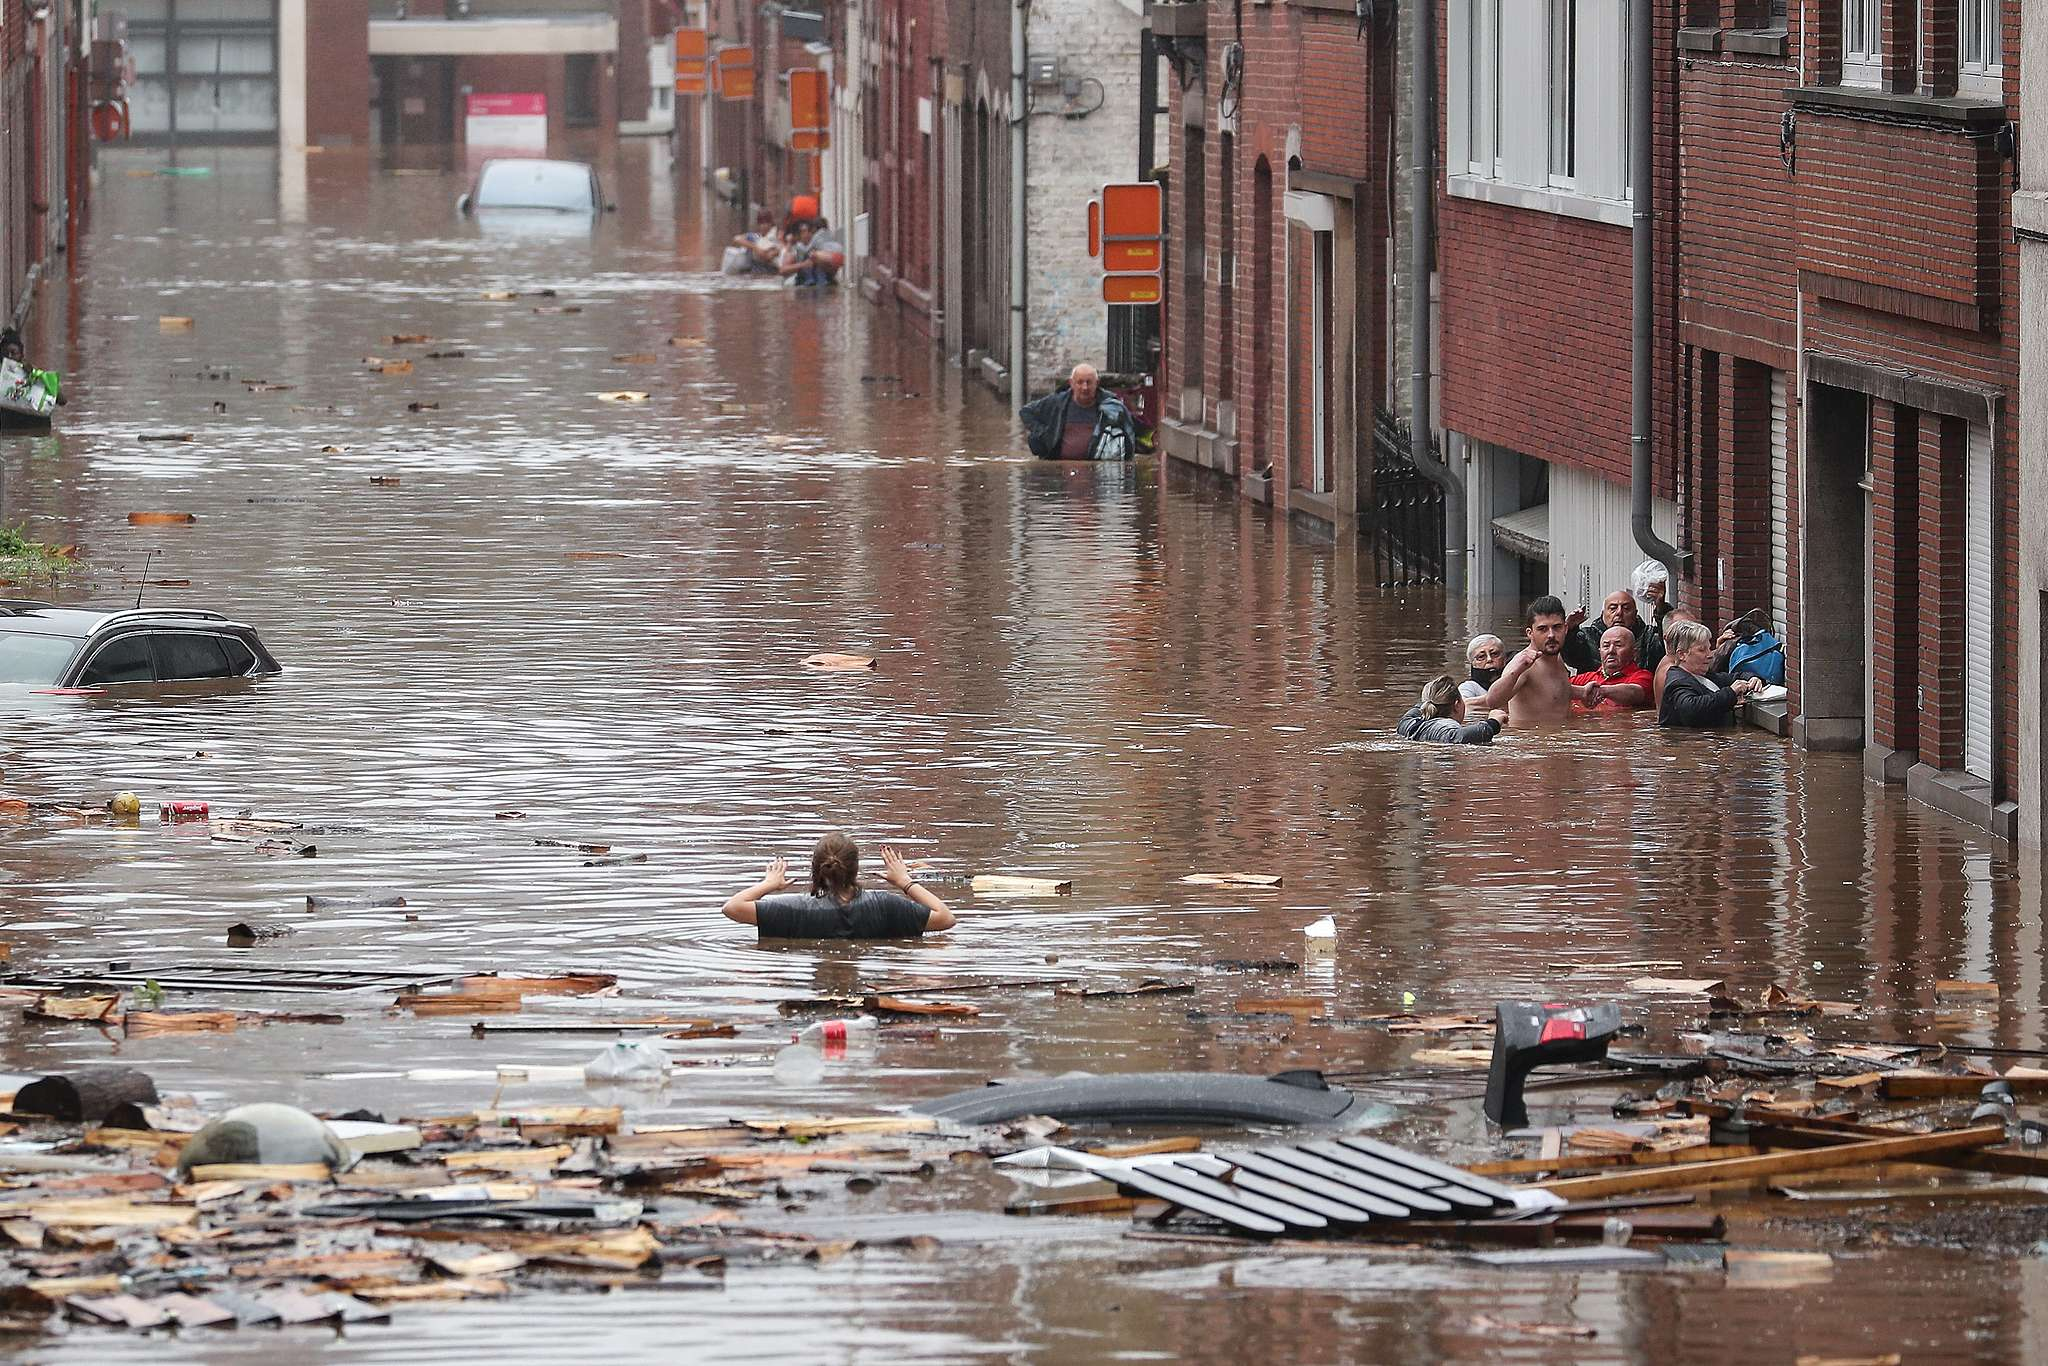 A woman is trying to move in a flooded street following heavy rains in Liege. © Bruno Fahy/Belga/AFP / Getty Images